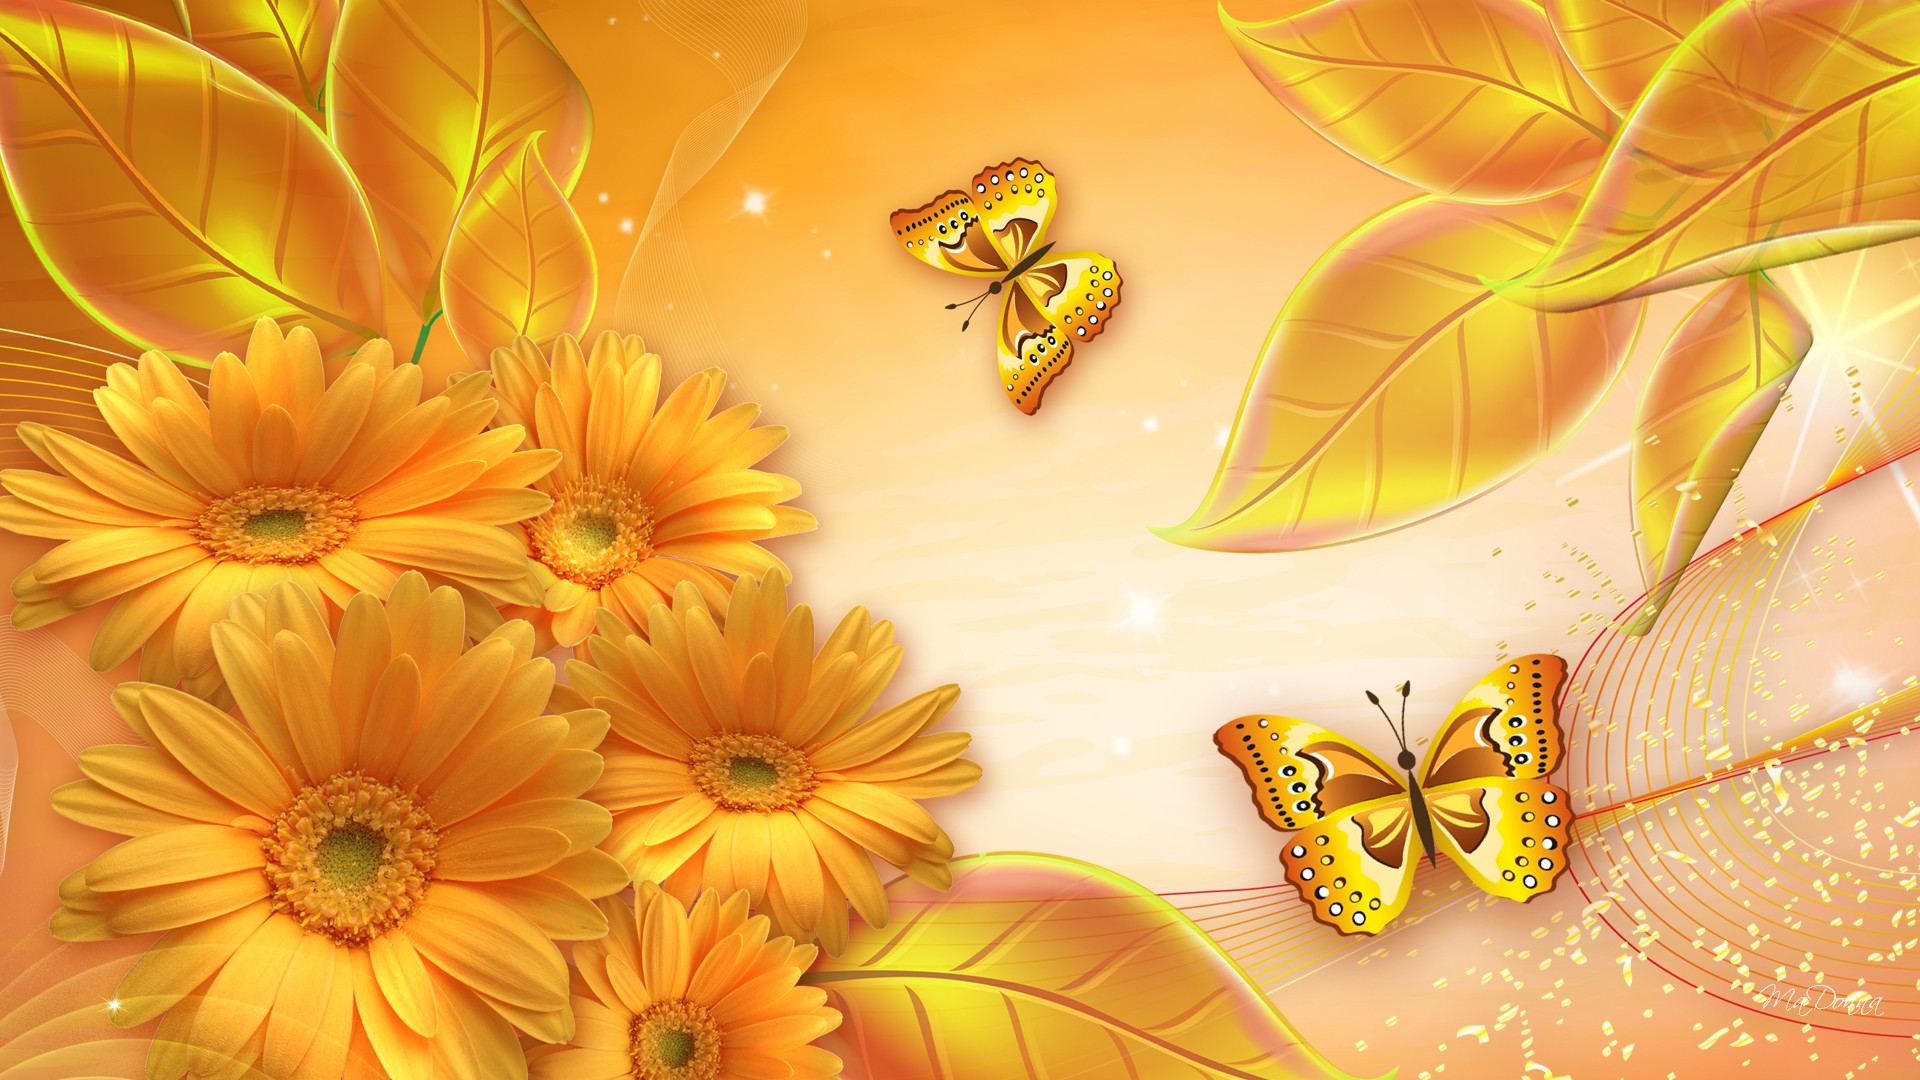 Flowers Gold Awesome Wallpaper 1920x1080